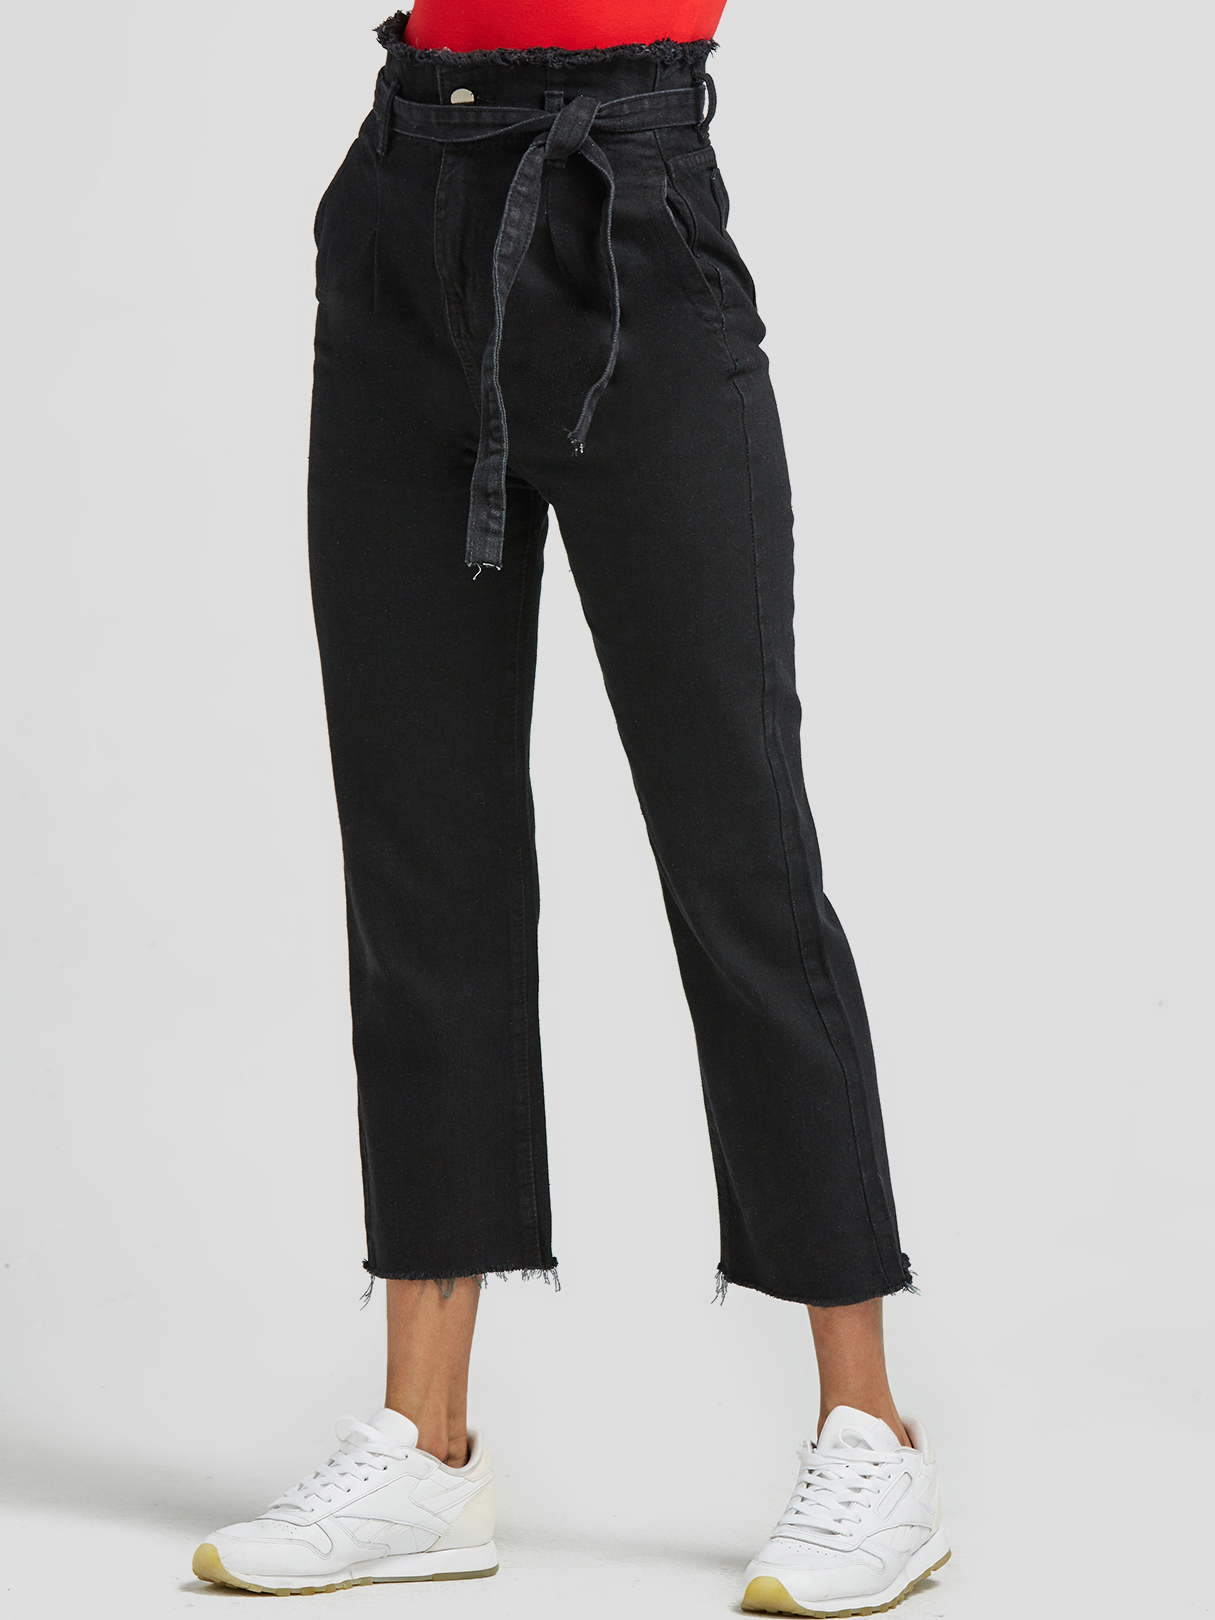 Black High-Waisted Jeans with Belt